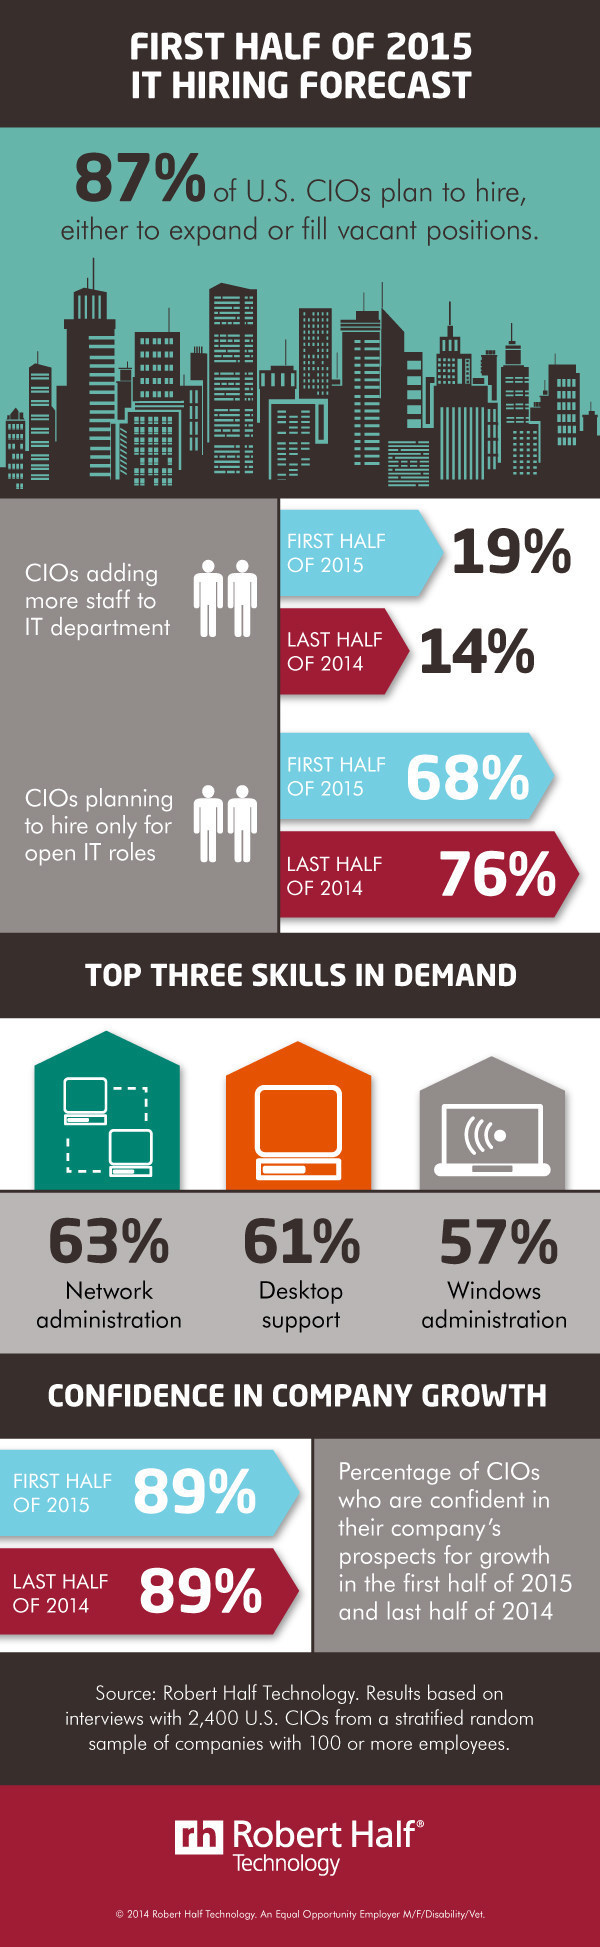 U S Cios Reveal Hiring Plans For First Half Of 2015 Infographic How To Plan Learning And Development